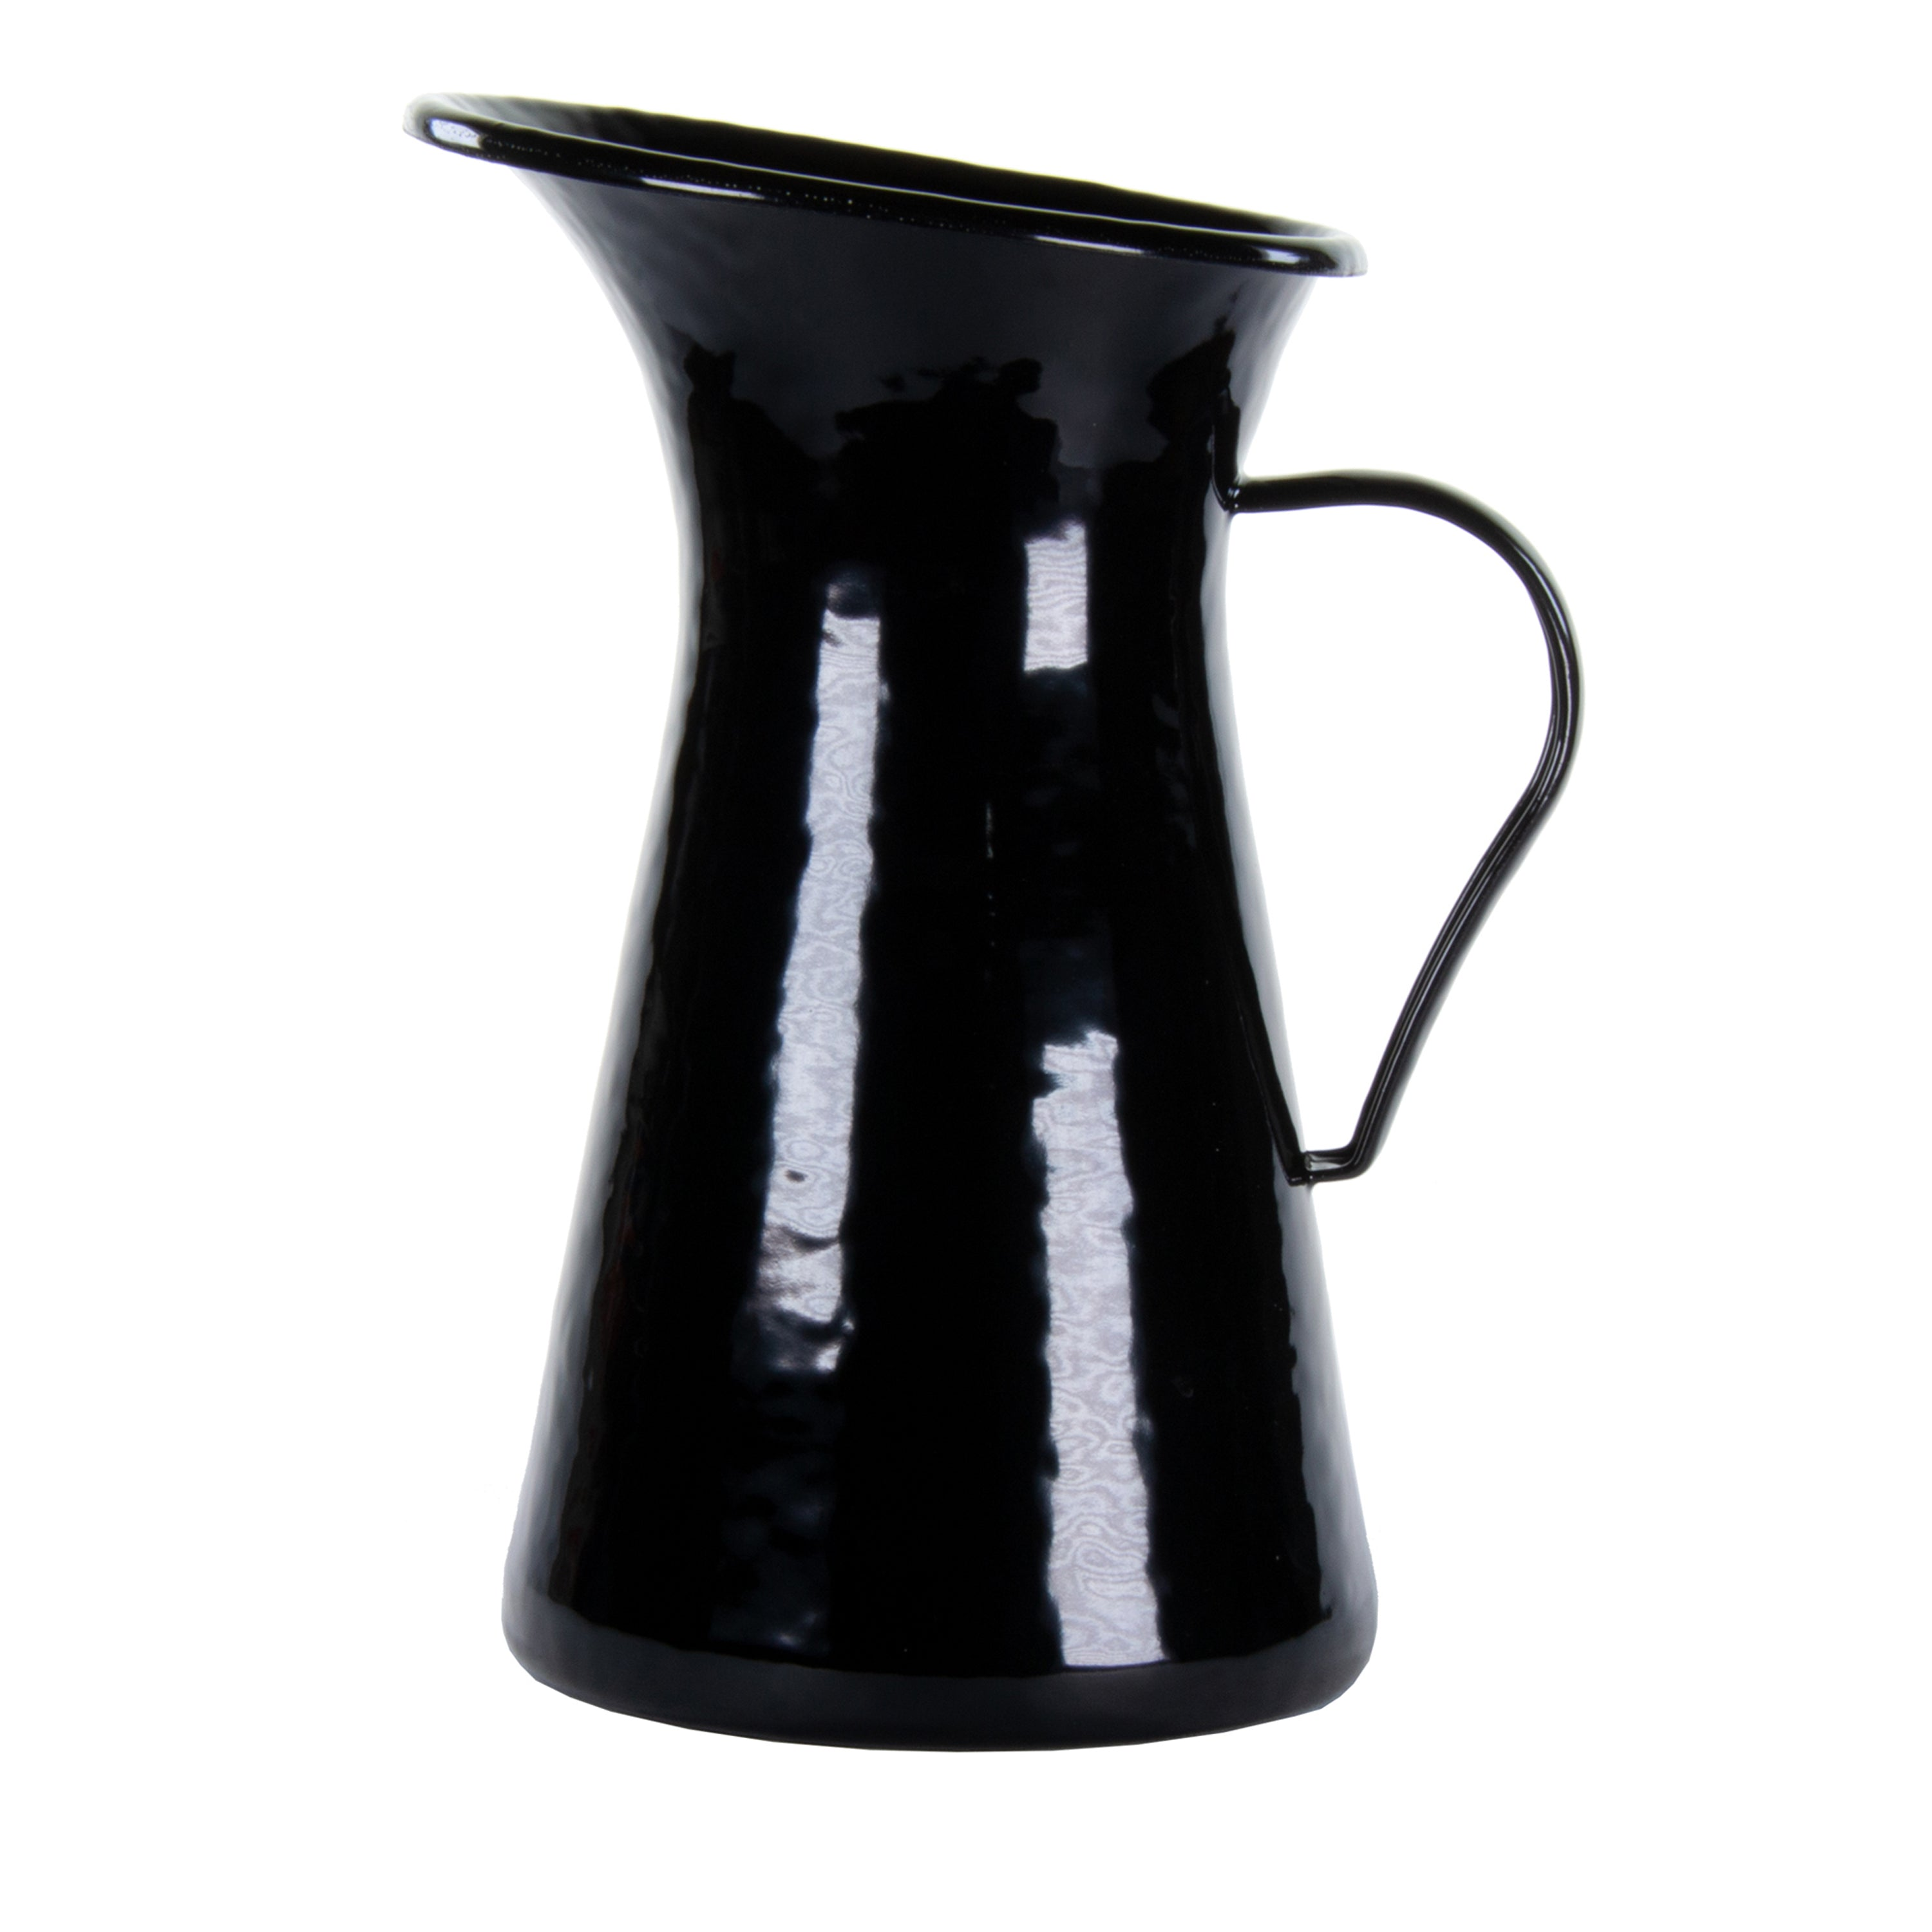 BK63 - Solid Black Medium Pitcher Image 1